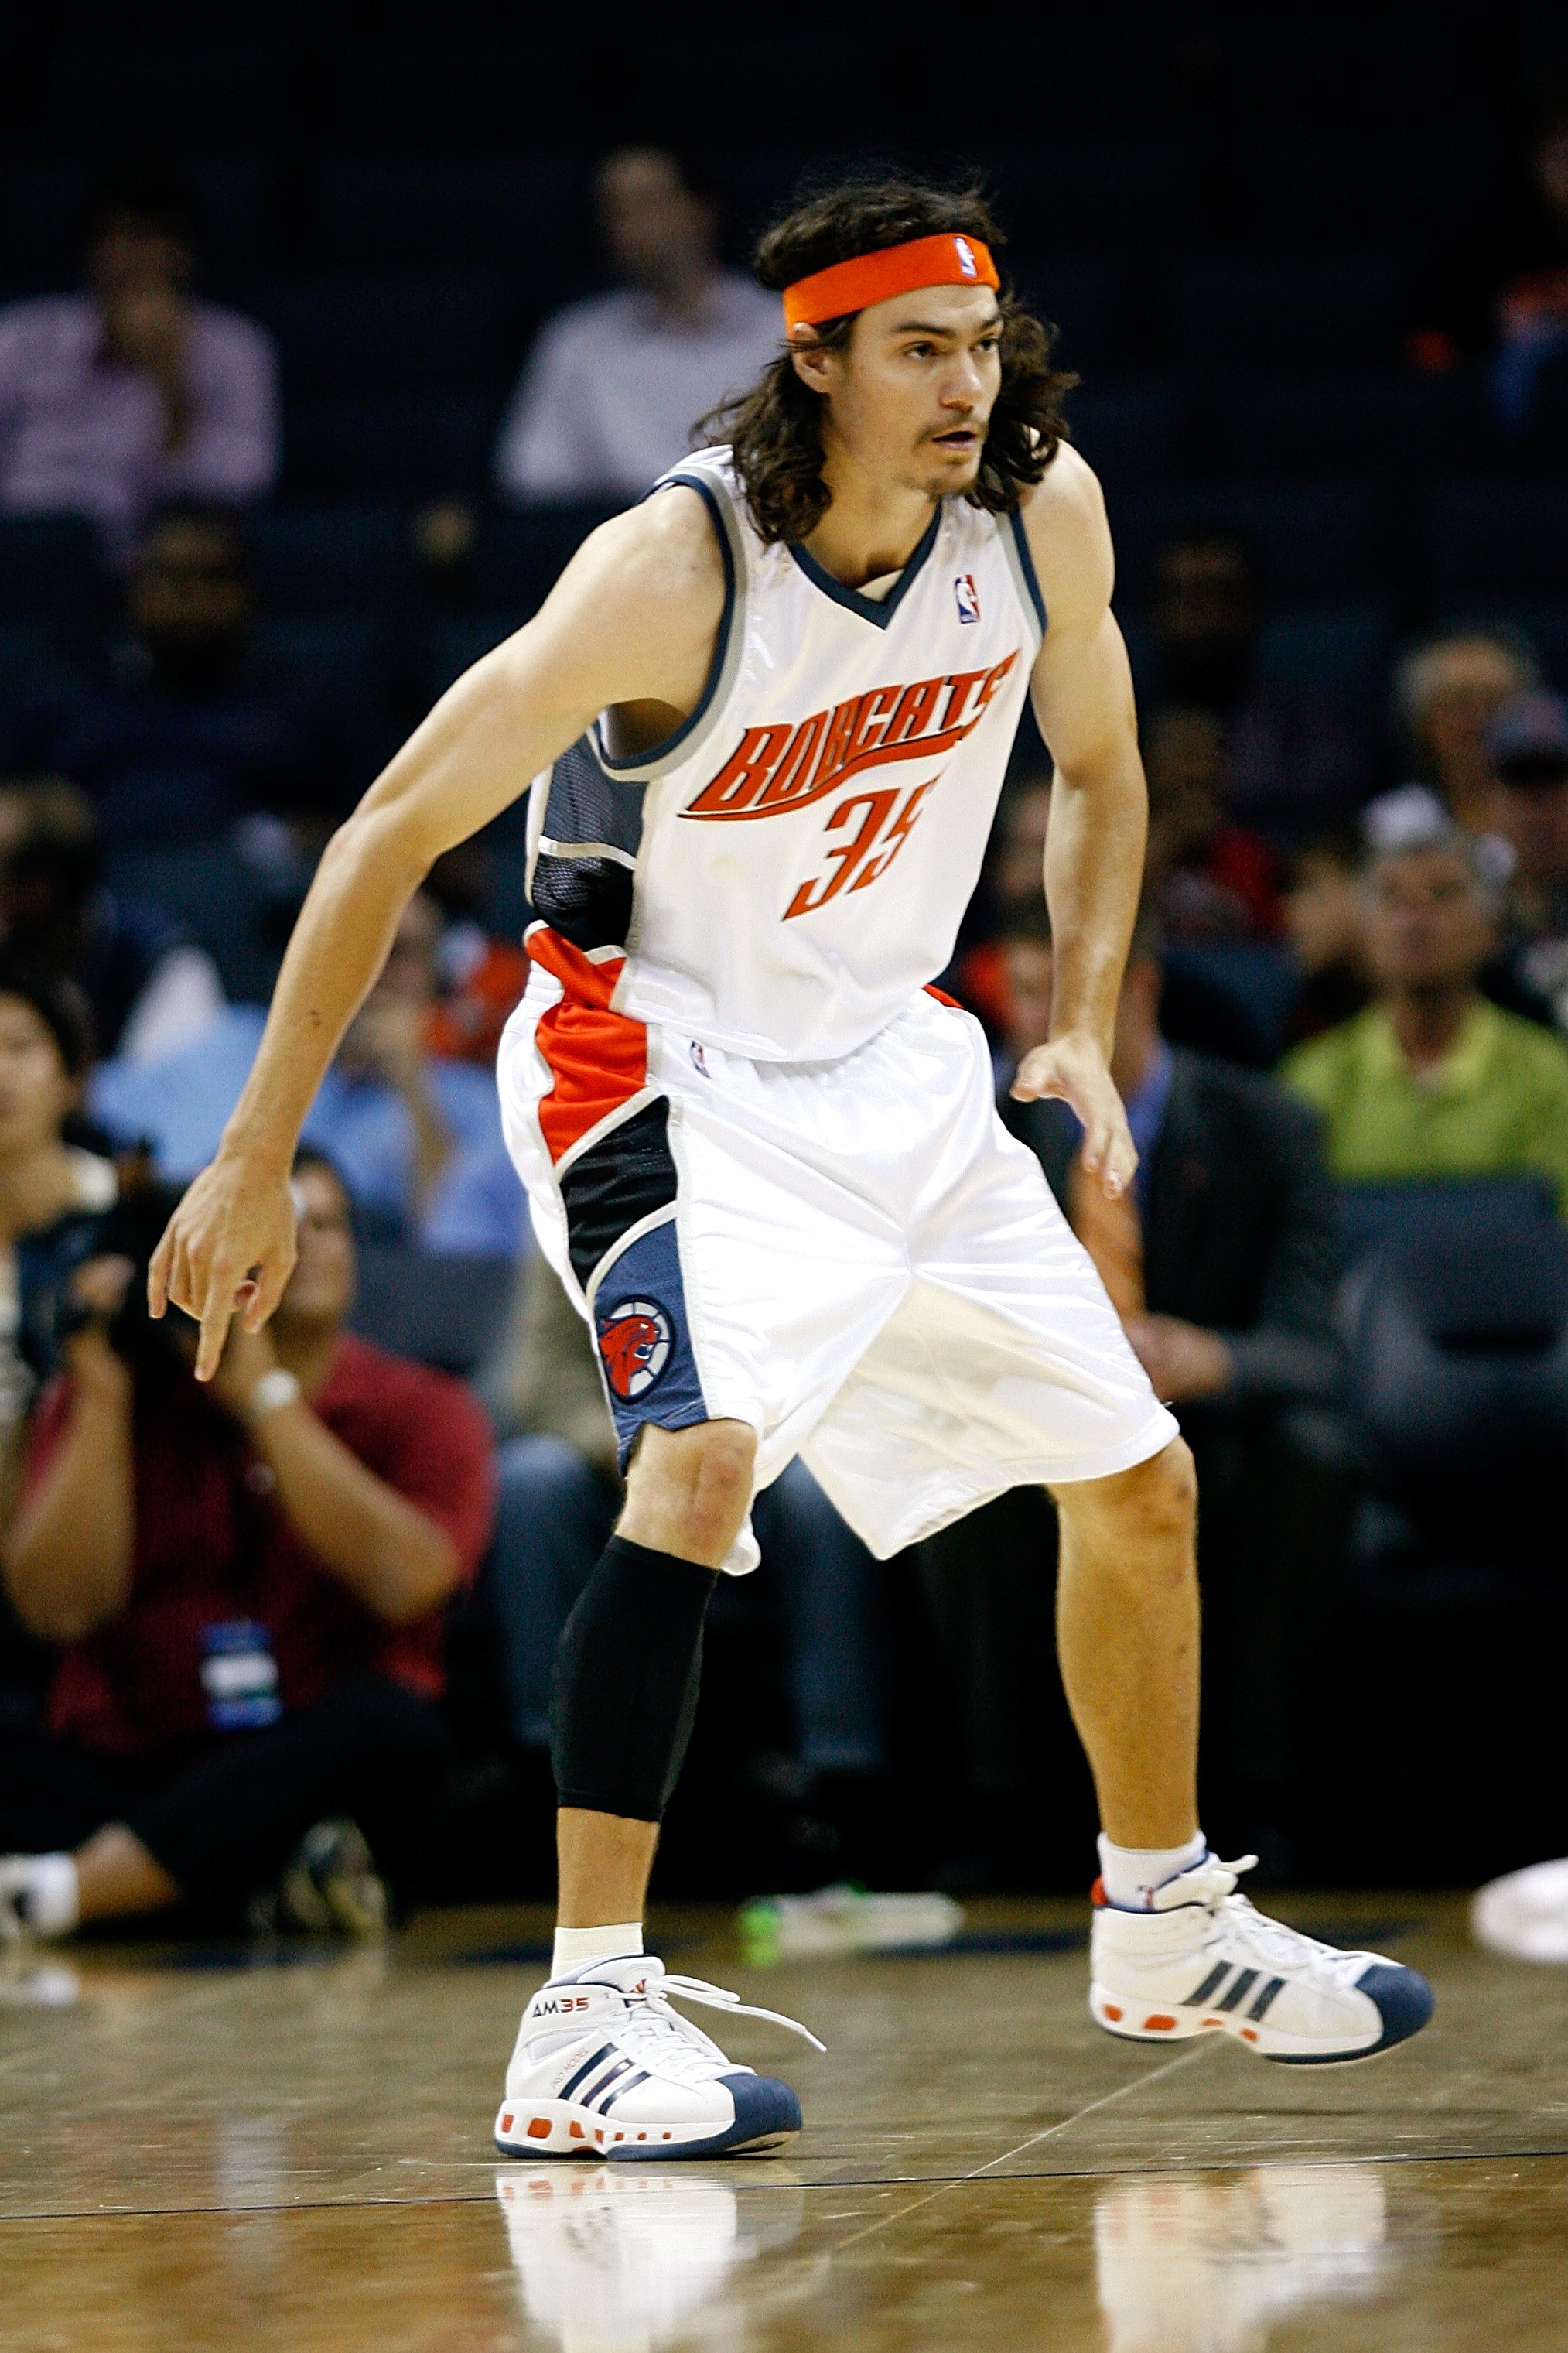 CHARLOTTE, NC - OCTOBER 15:   Adam Morrison #35 of the Charlotte Bobcats waits on defense during the game against the New Jersey Nets at Charlotte Bobcats Arena on October 15, 2007 in Charlotte, North Carolina.  The Bobcats won 96-86.  NOTE TO USER: User